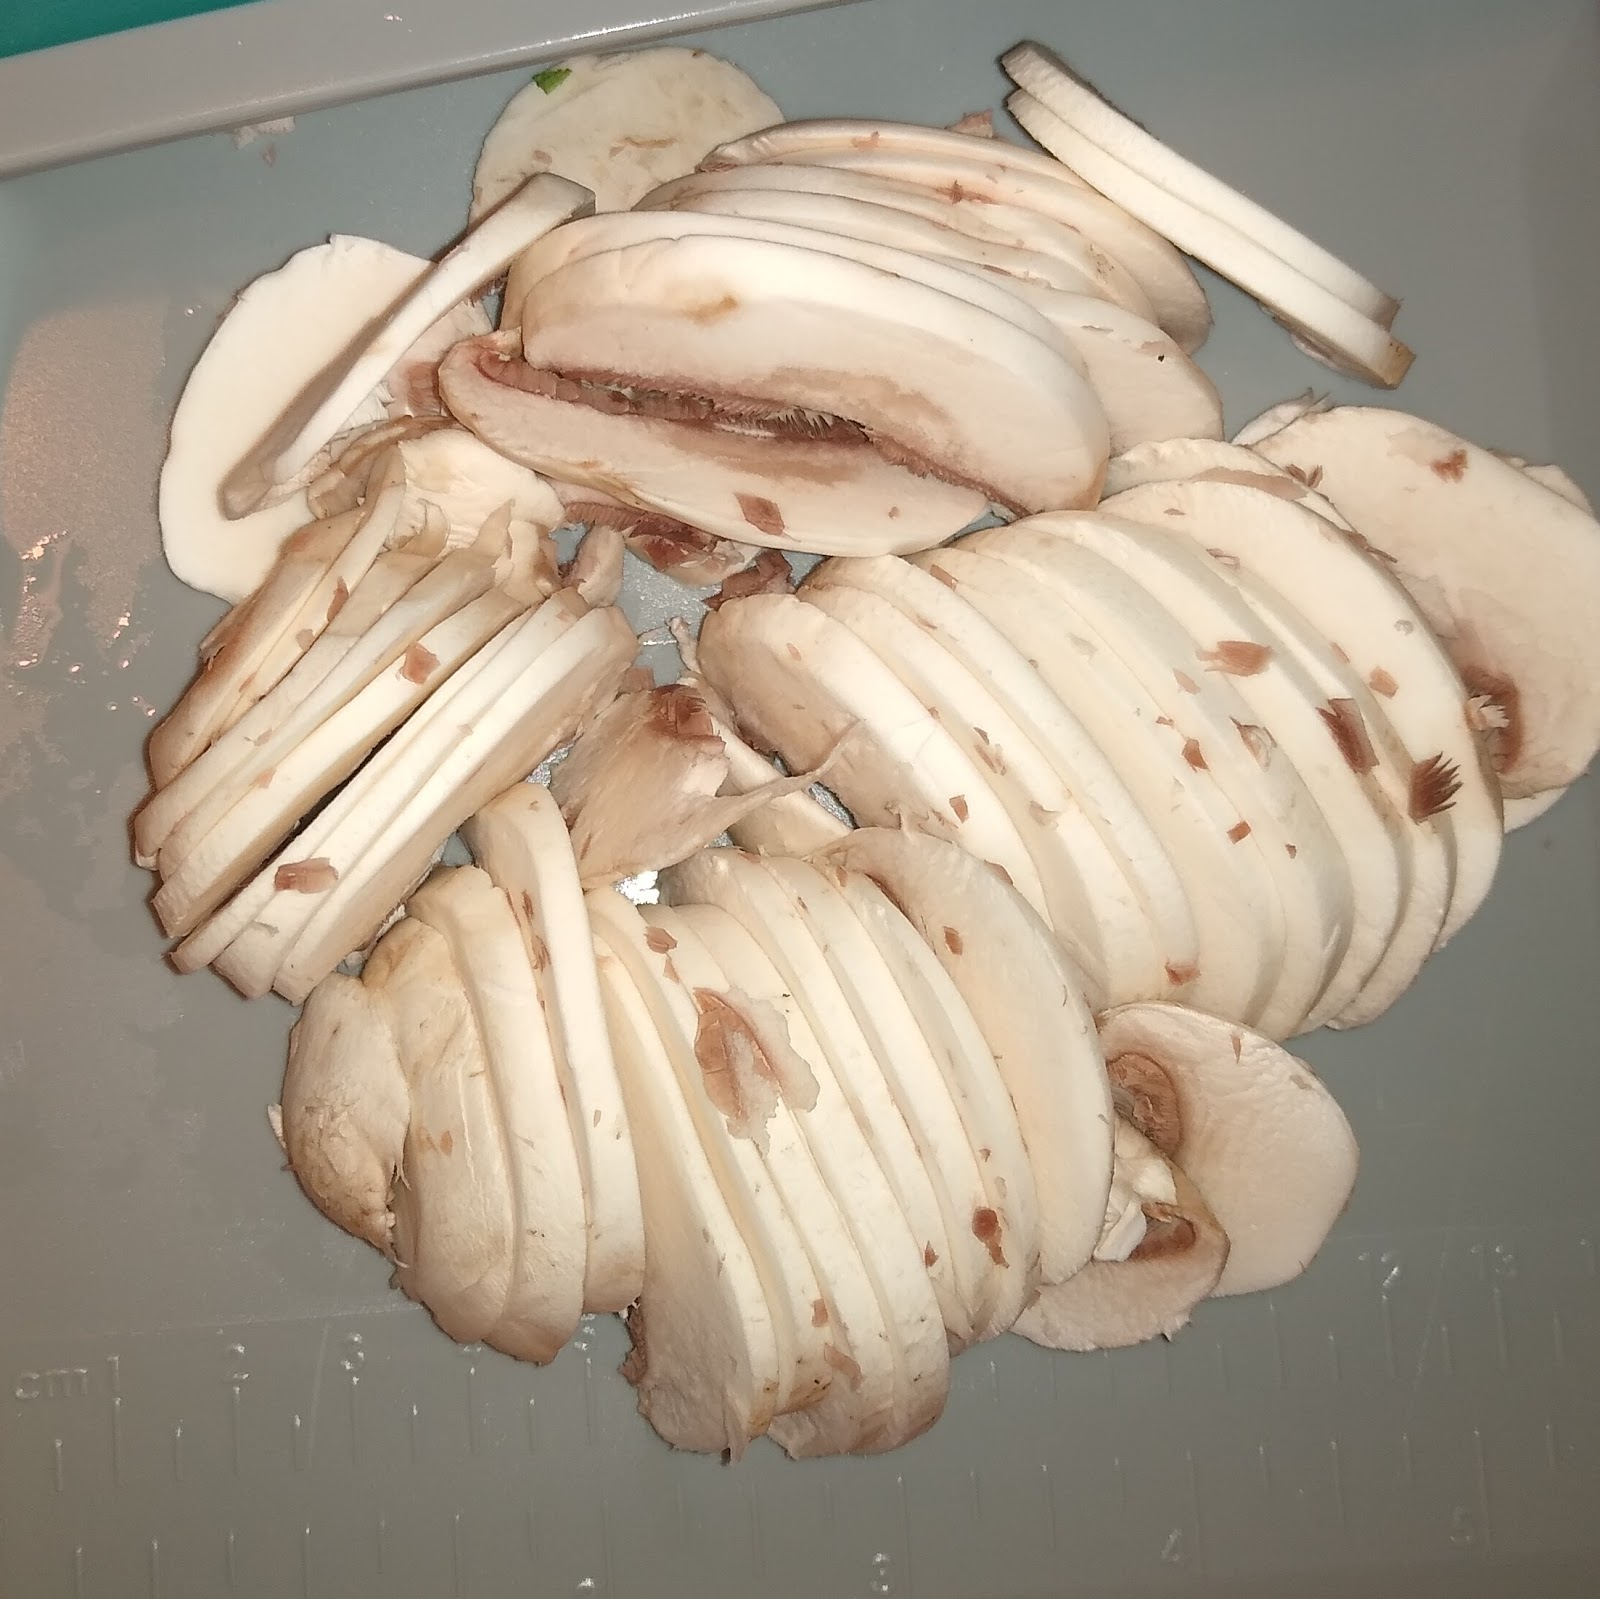 sliced mushrooms.